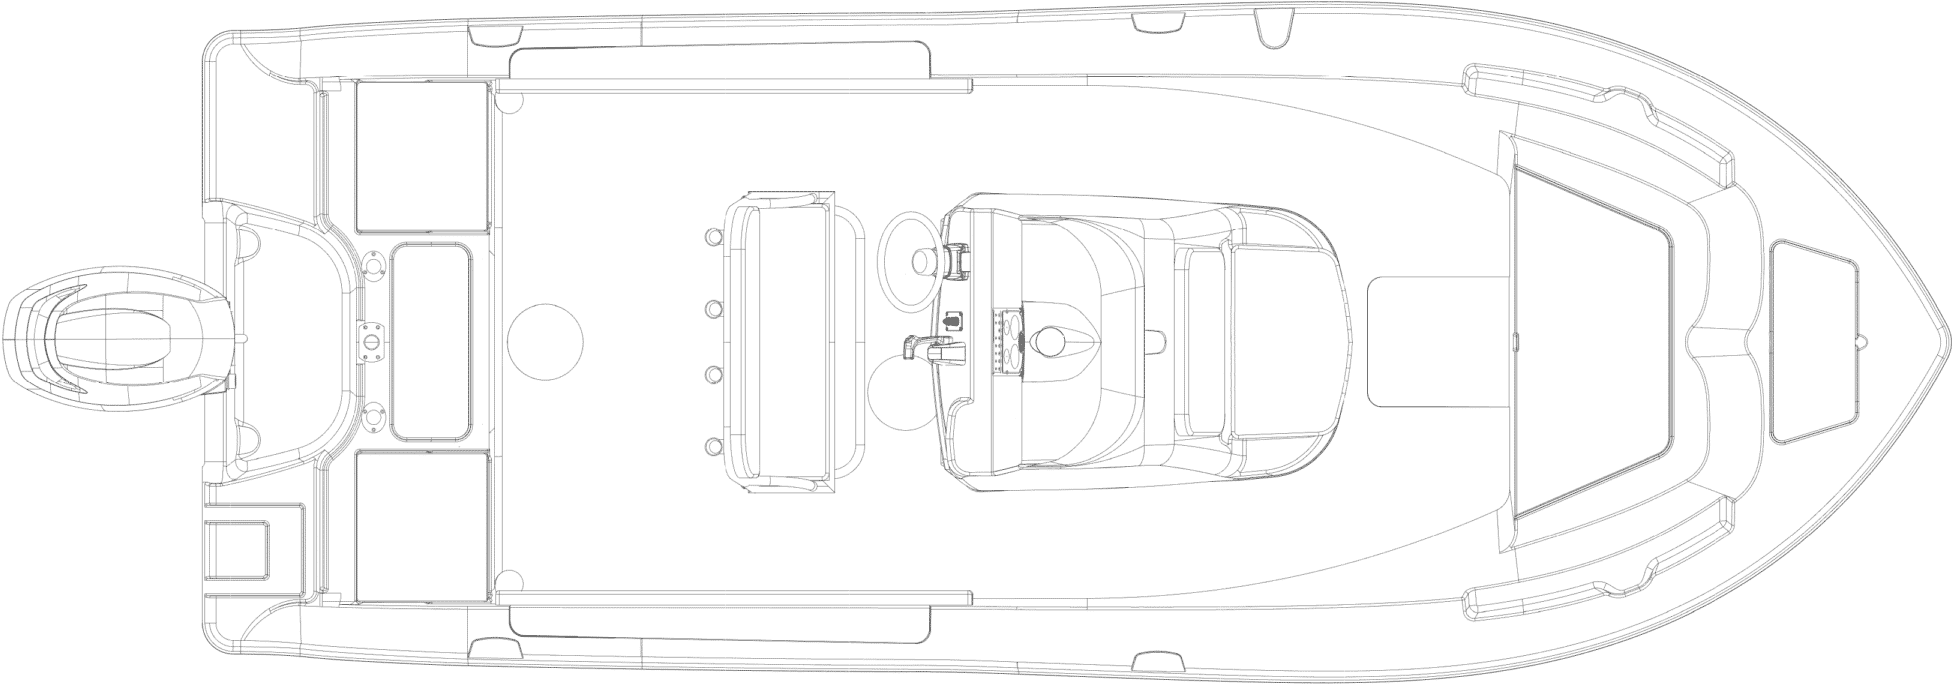 206-plan-view-new- Cropped